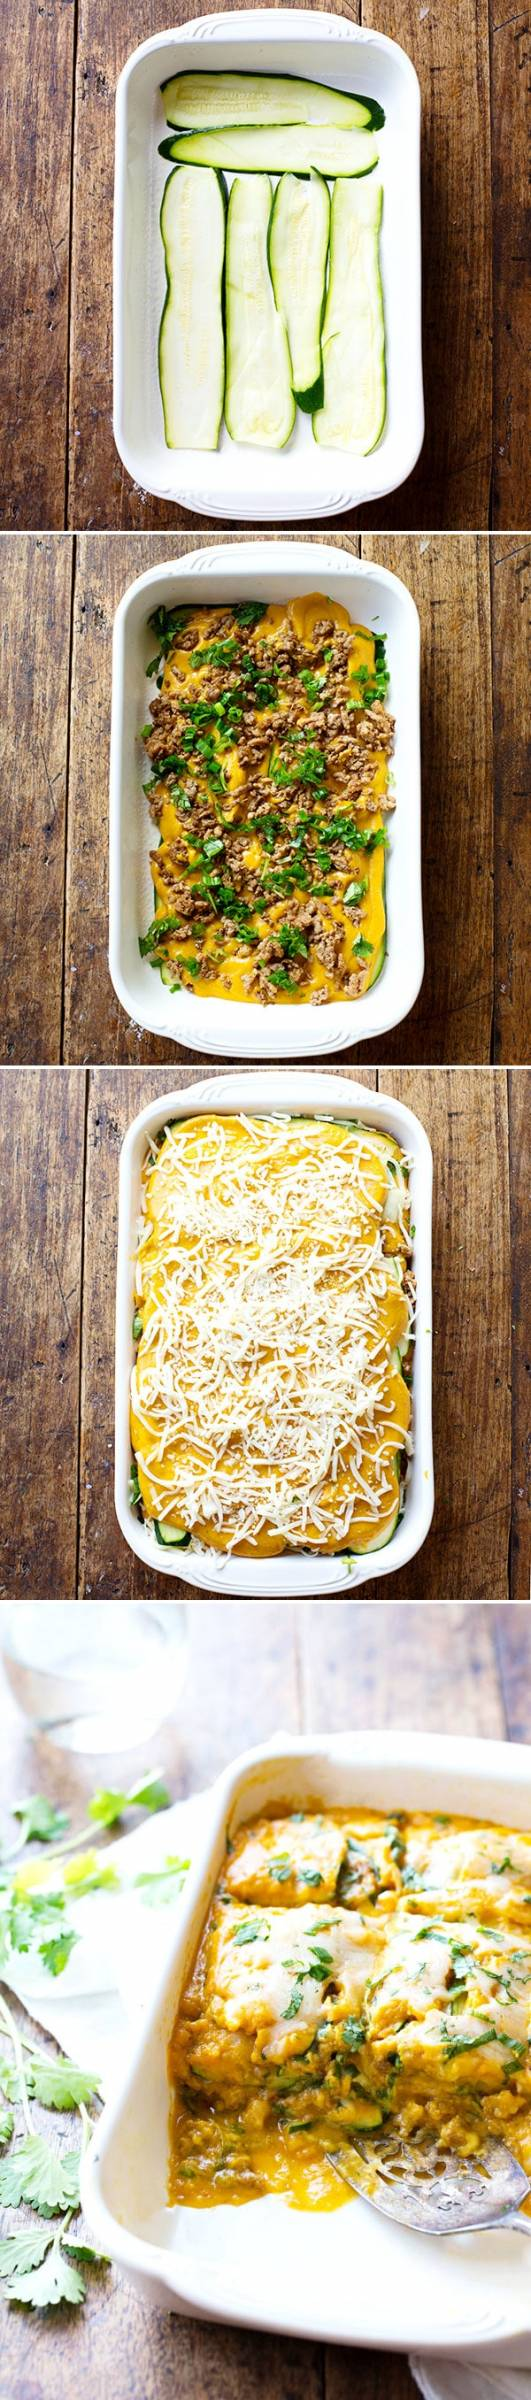 This Sausage and Sweet Potato Zucchini Lasagna features ancho chili spiced sausage and a sweet potato sauce that is uniquely sweet and savory. | pinchofyum.com